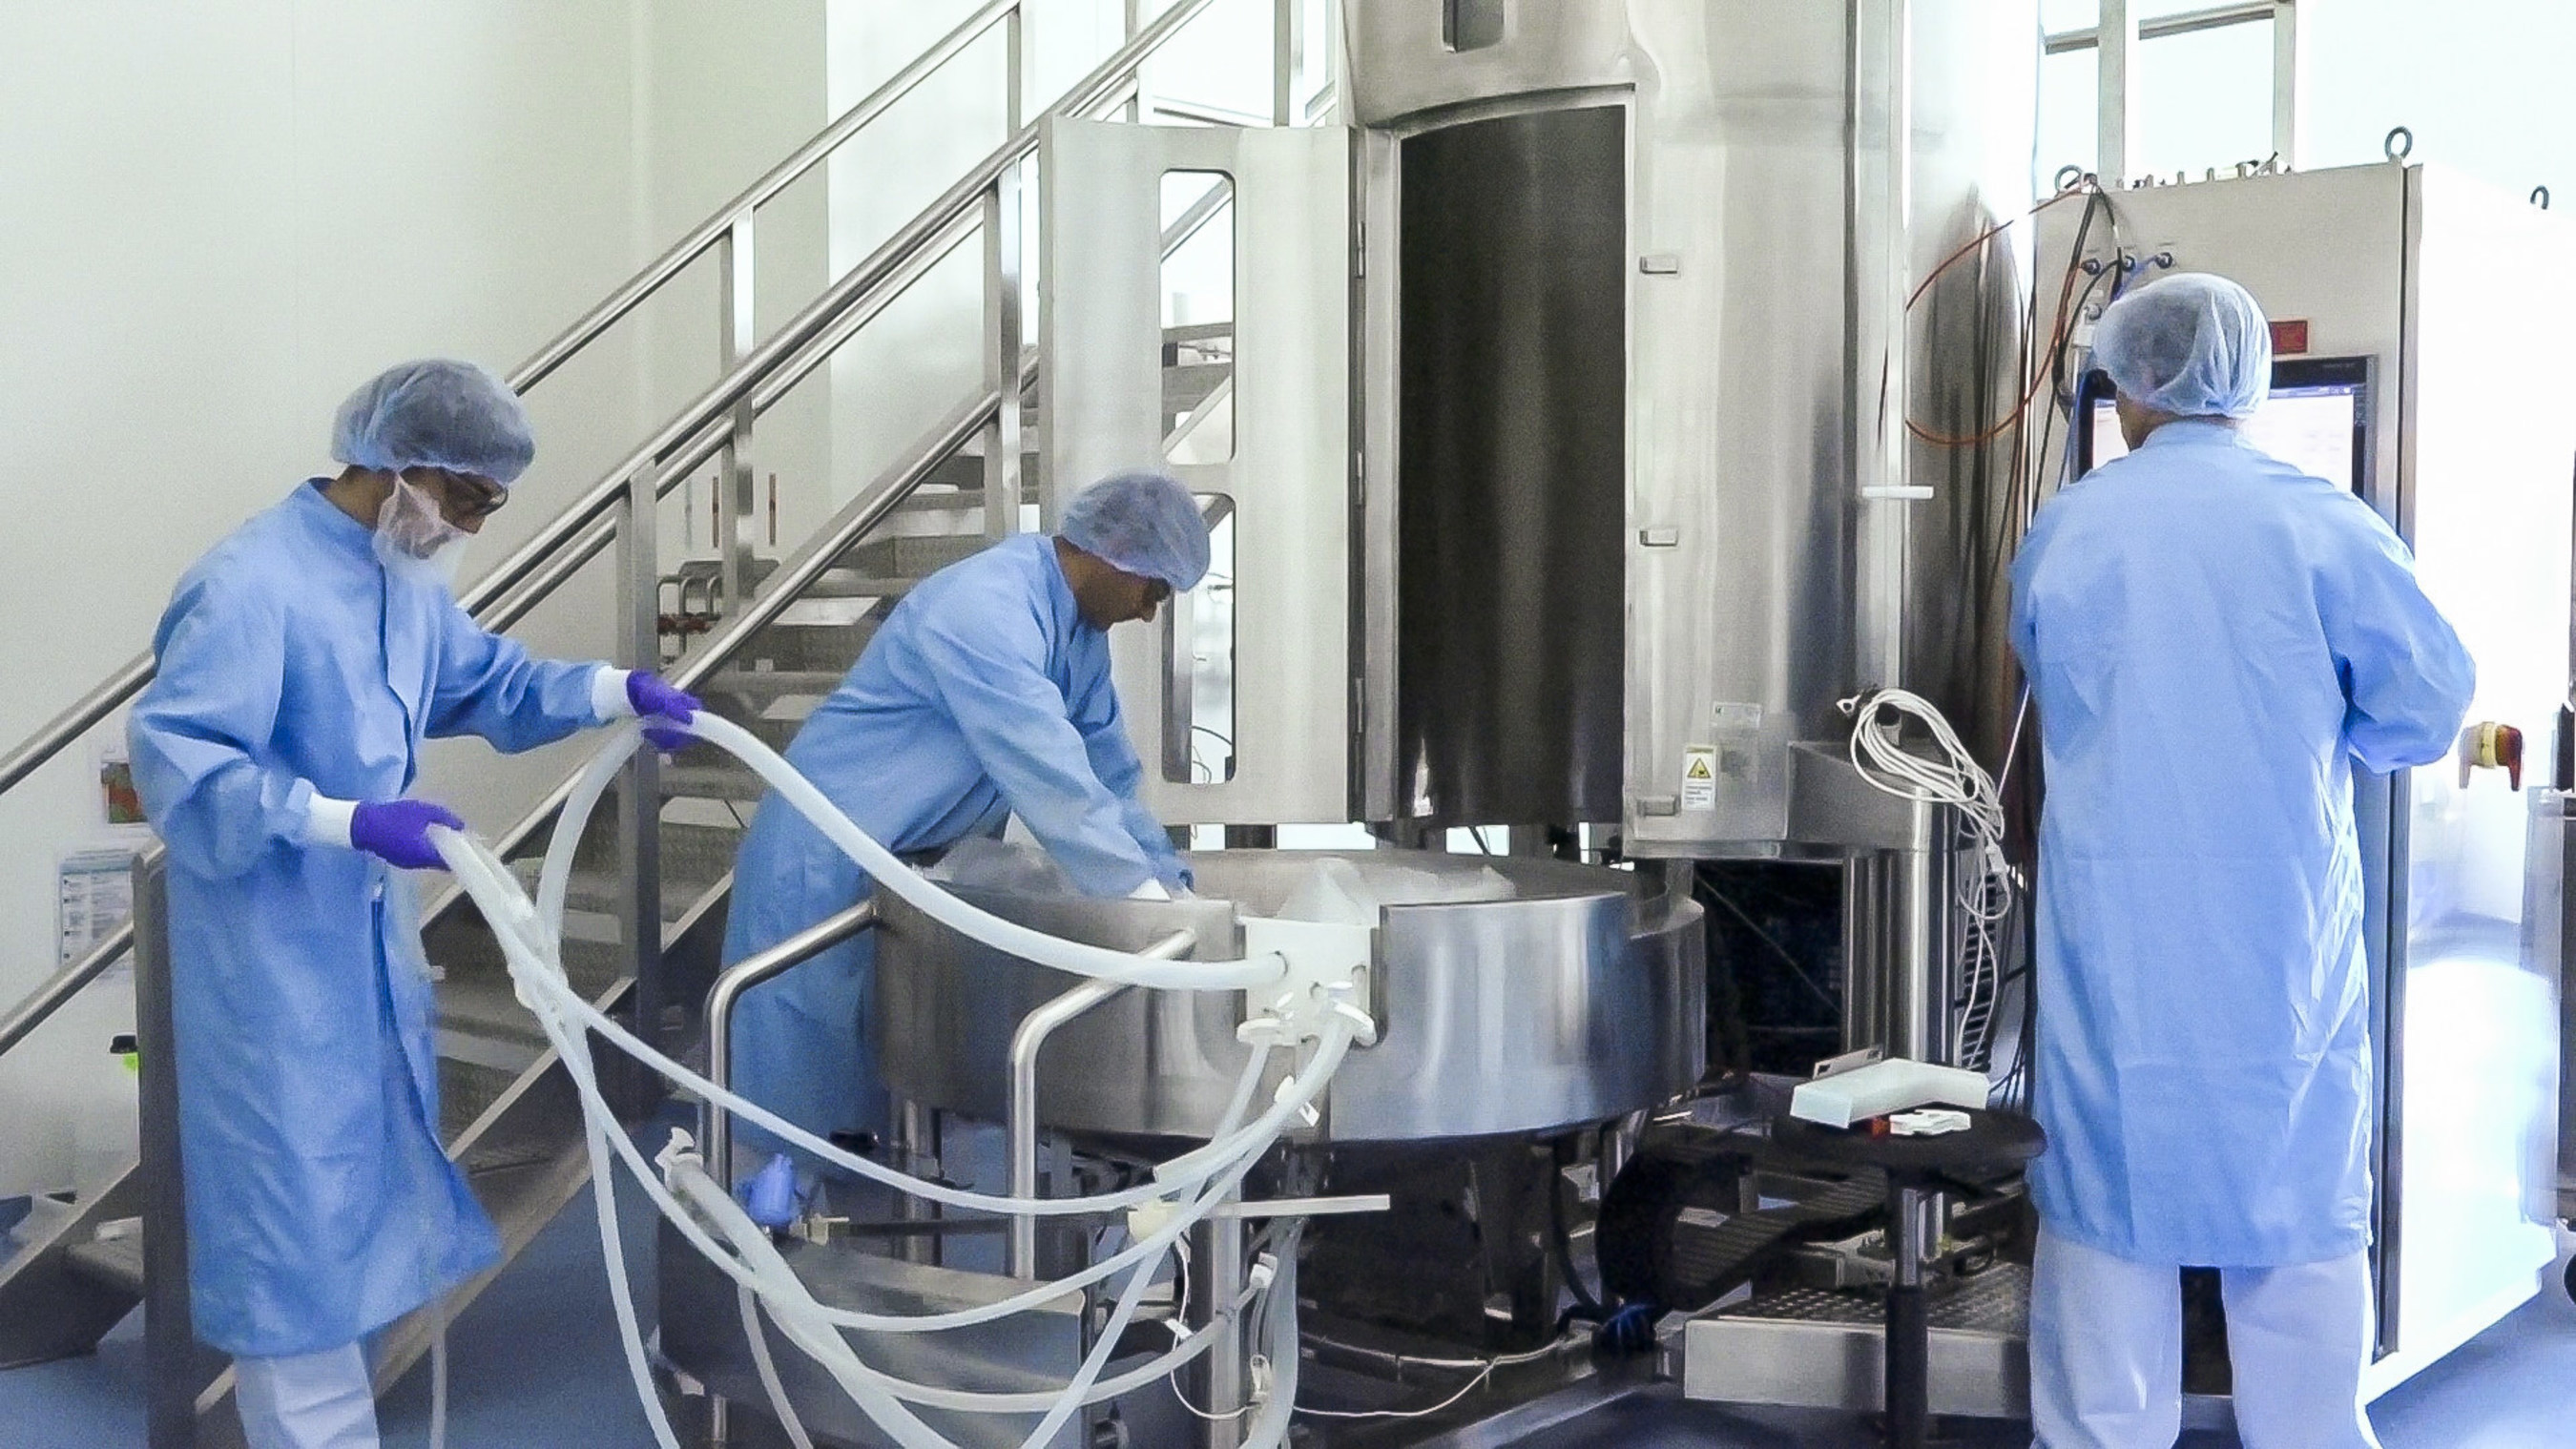 With the addition of Merck's Mobius(R) 2000L single-use bioreactor to its new upstream suite at its Biodevelopment Center in France, the company can now offer clients full process line cGMP manufacturing